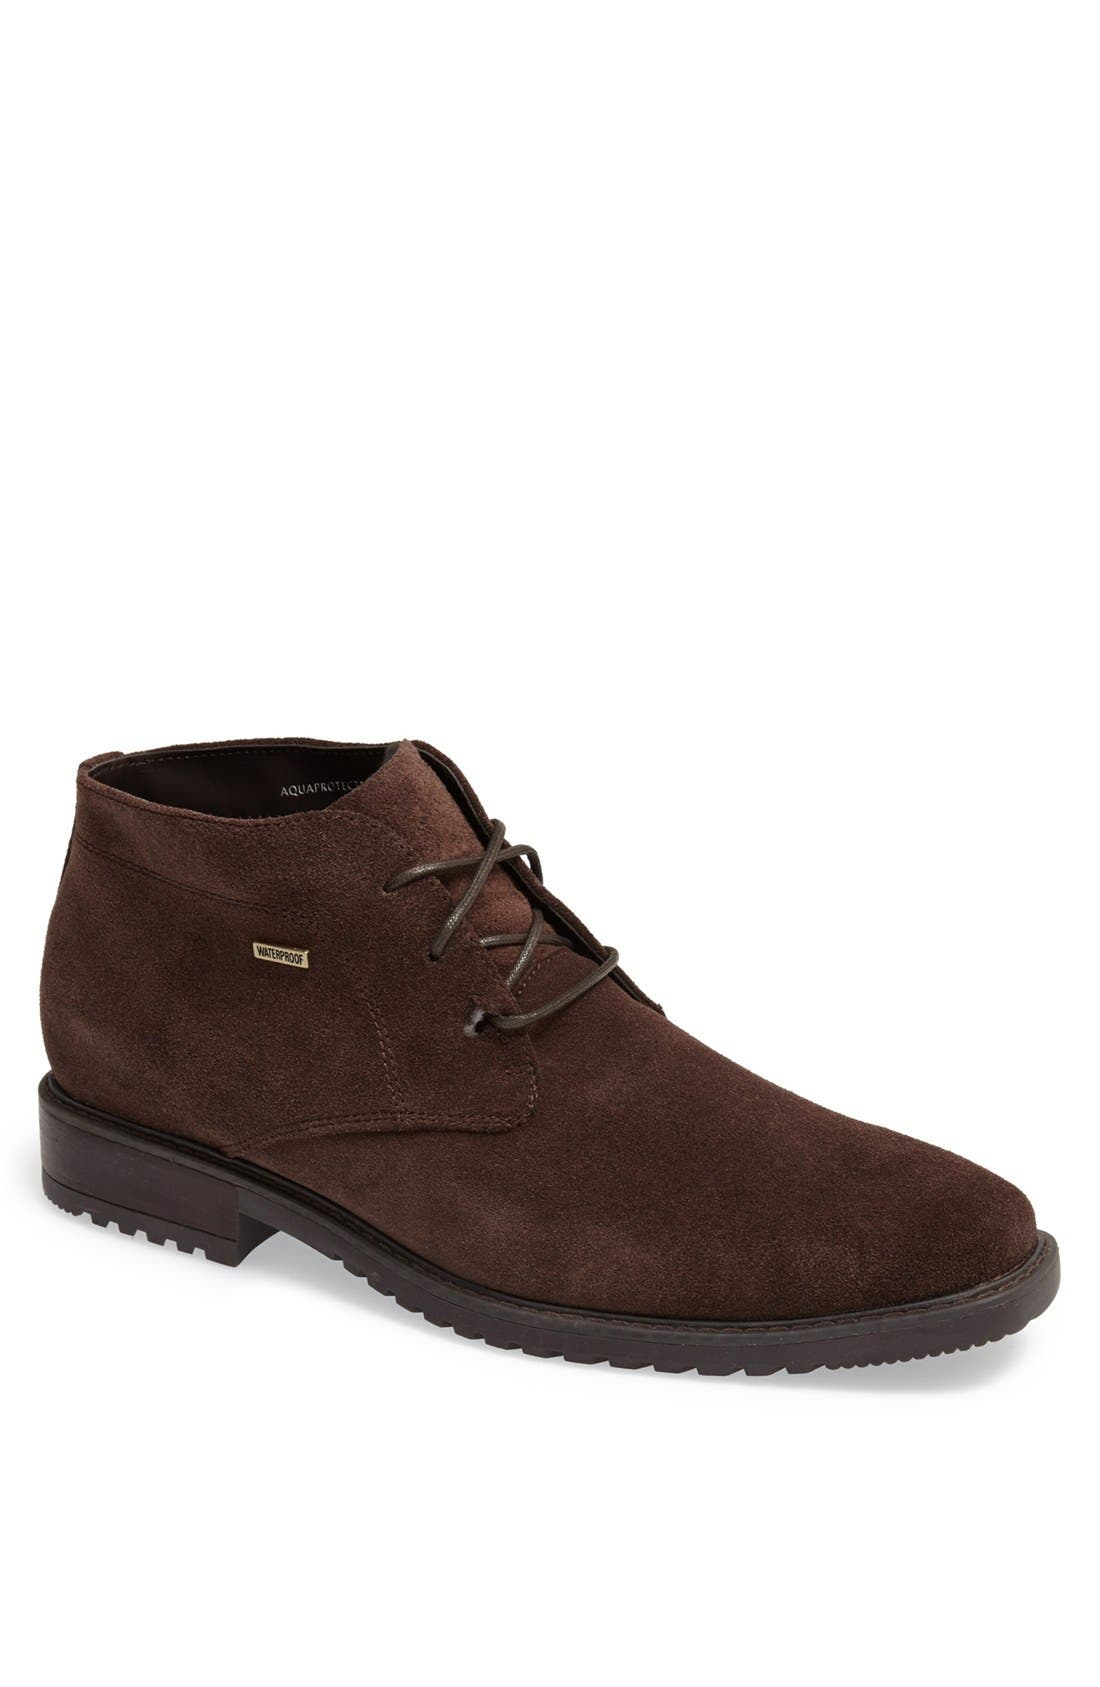 'Griffin' Waterproof Suede Chukka Boot,                         Main,                         color, 201